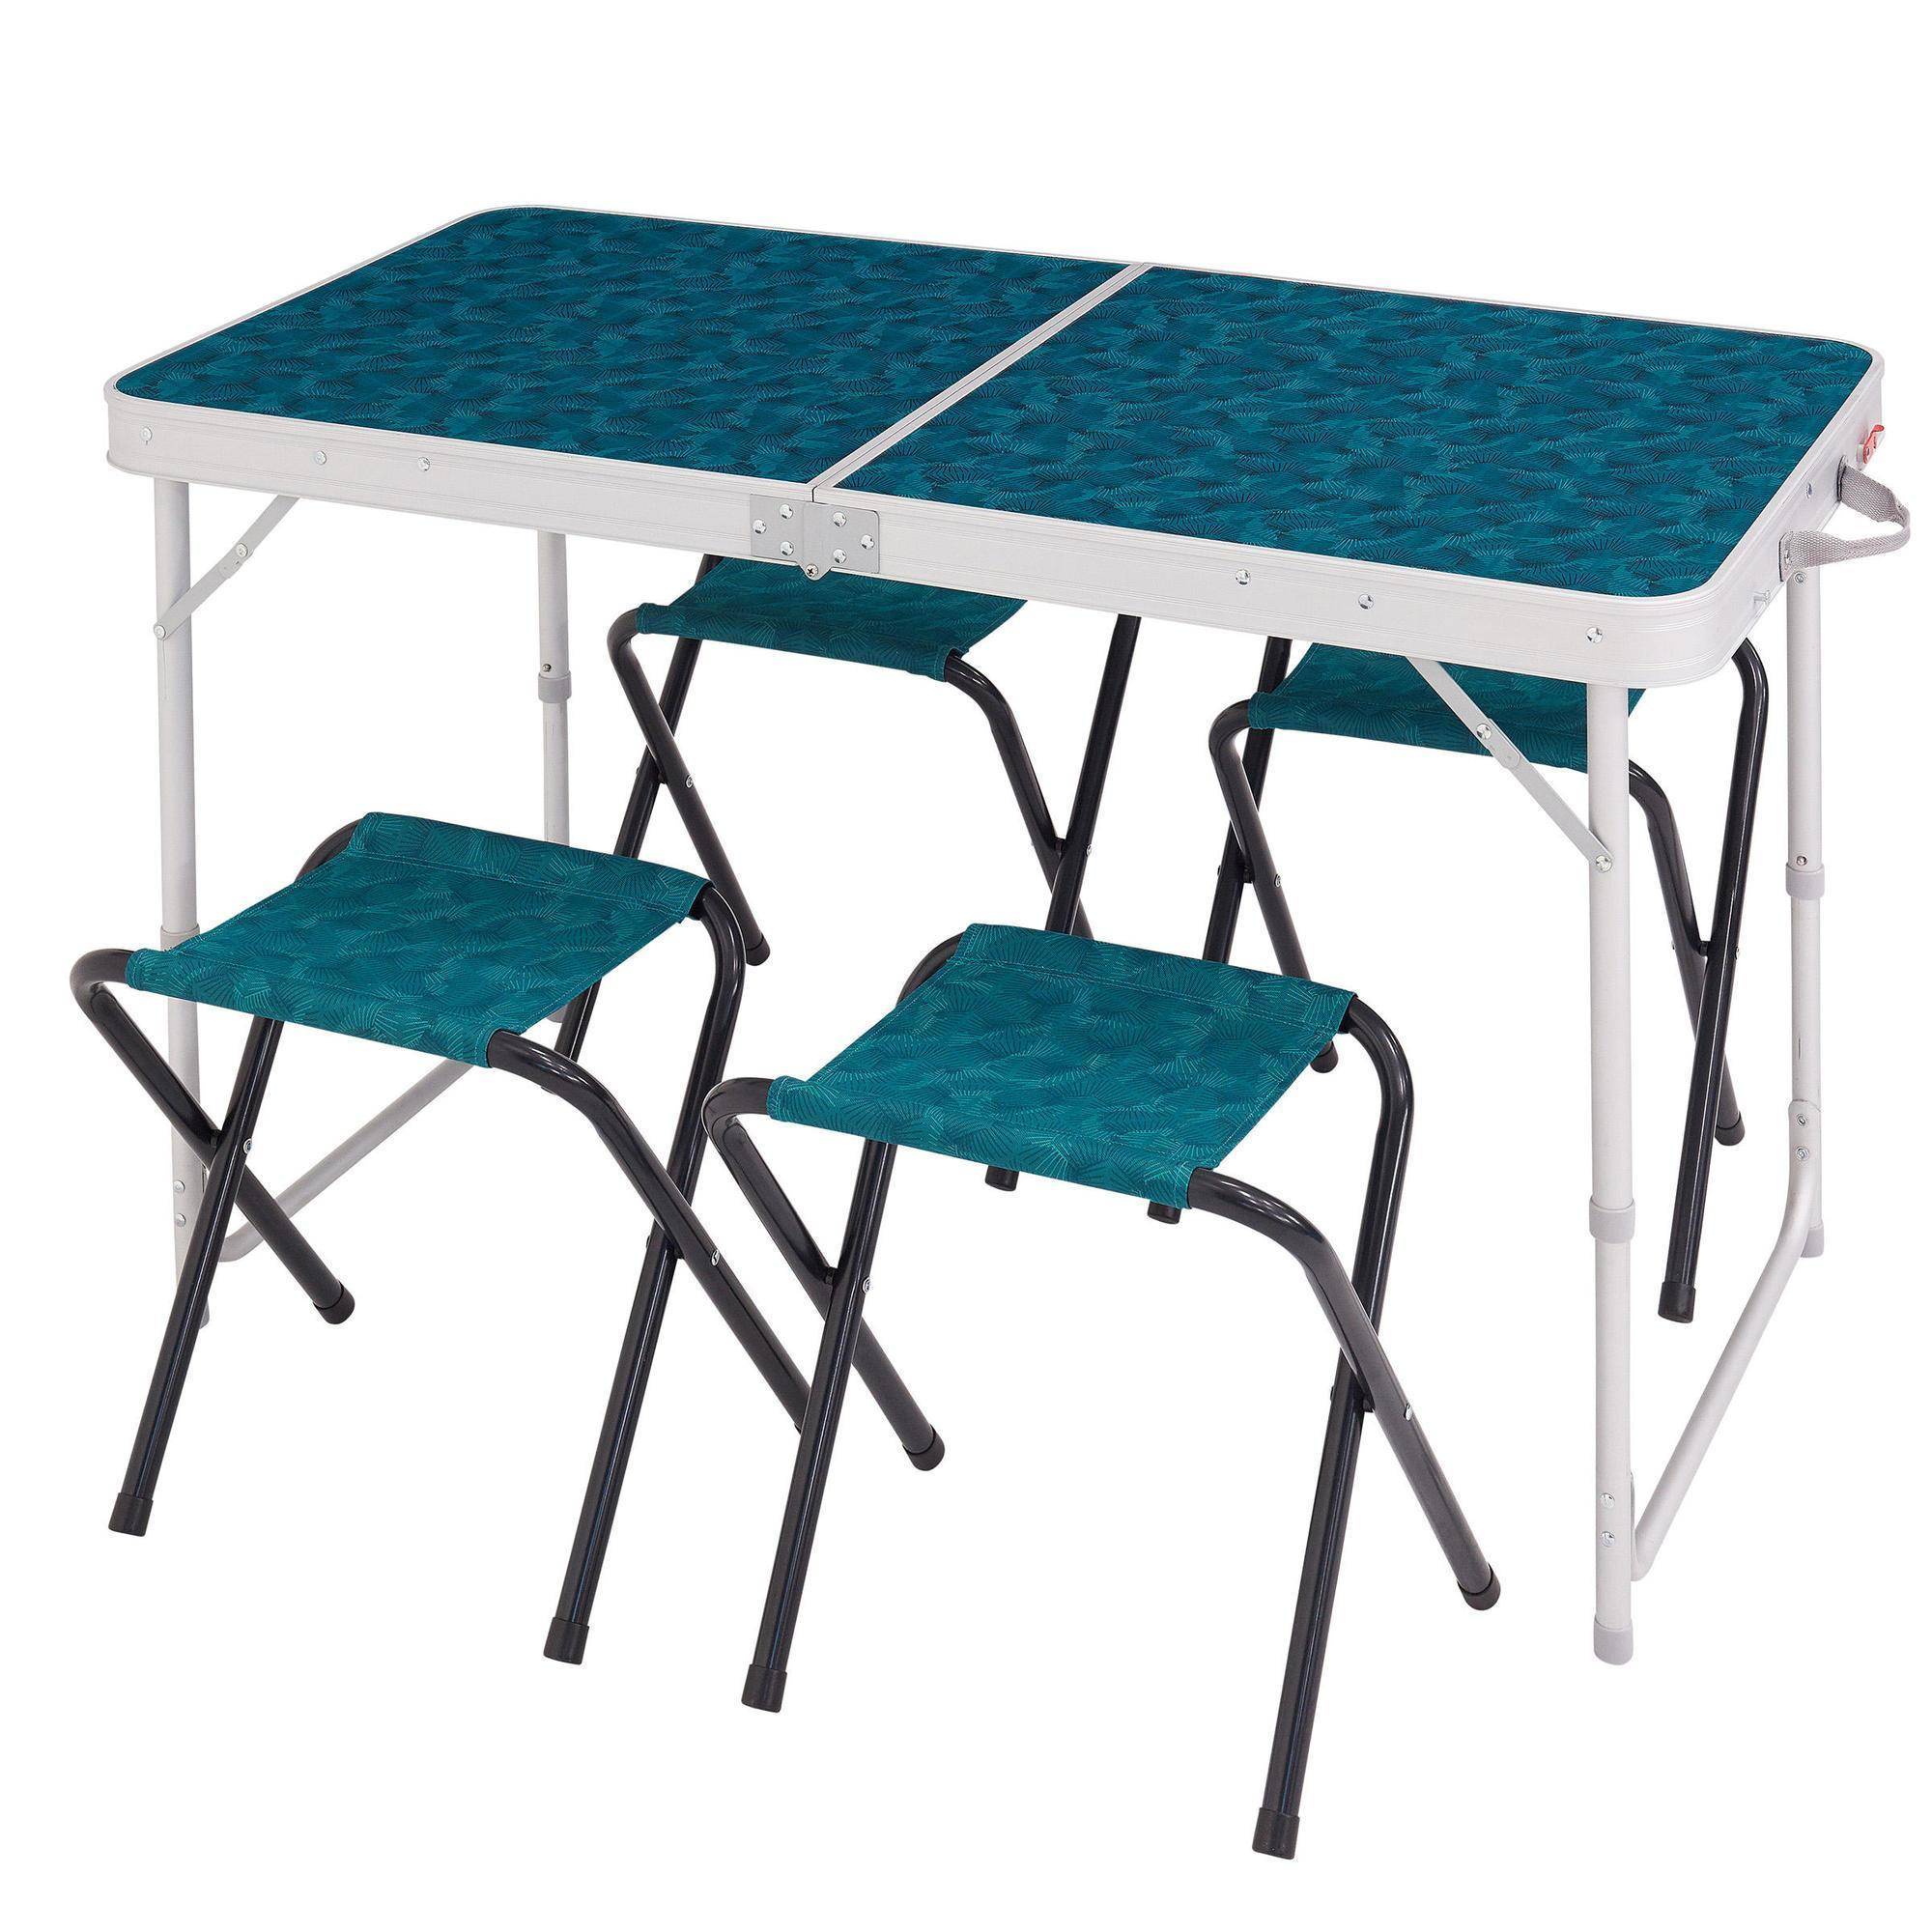 table de camping 4 personnes avec 4 si ges quechua. Black Bedroom Furniture Sets. Home Design Ideas